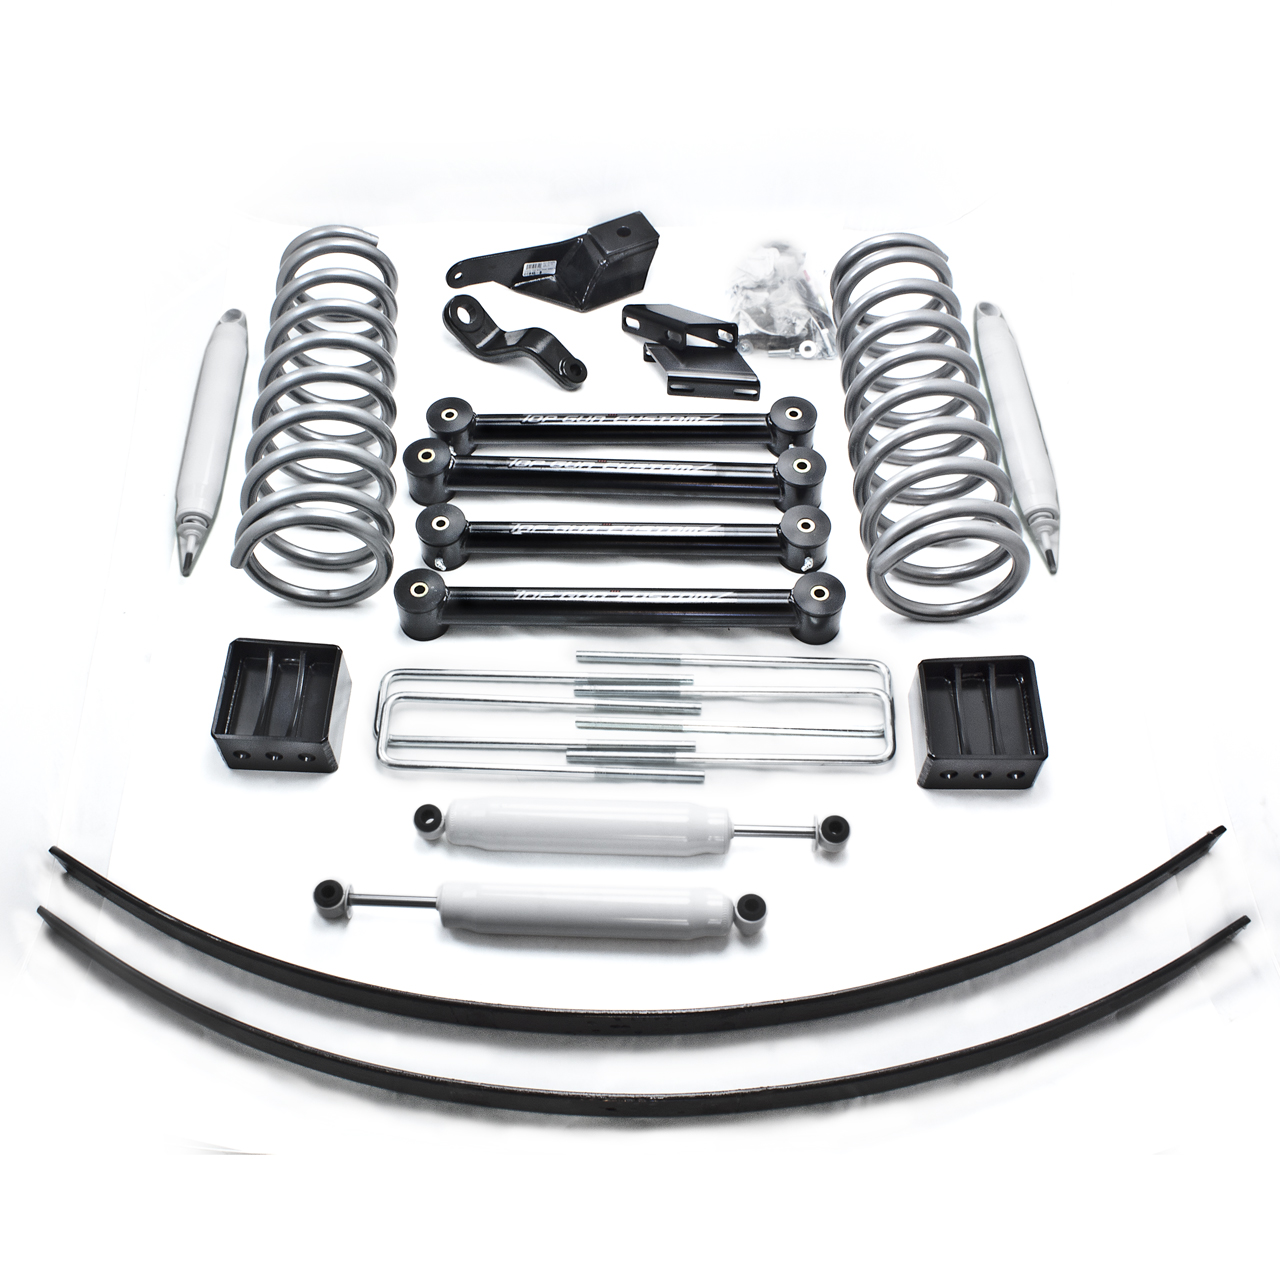 Dodge Lift Kit For 1994 Dodge Ram 3500 Truck Lift Kits